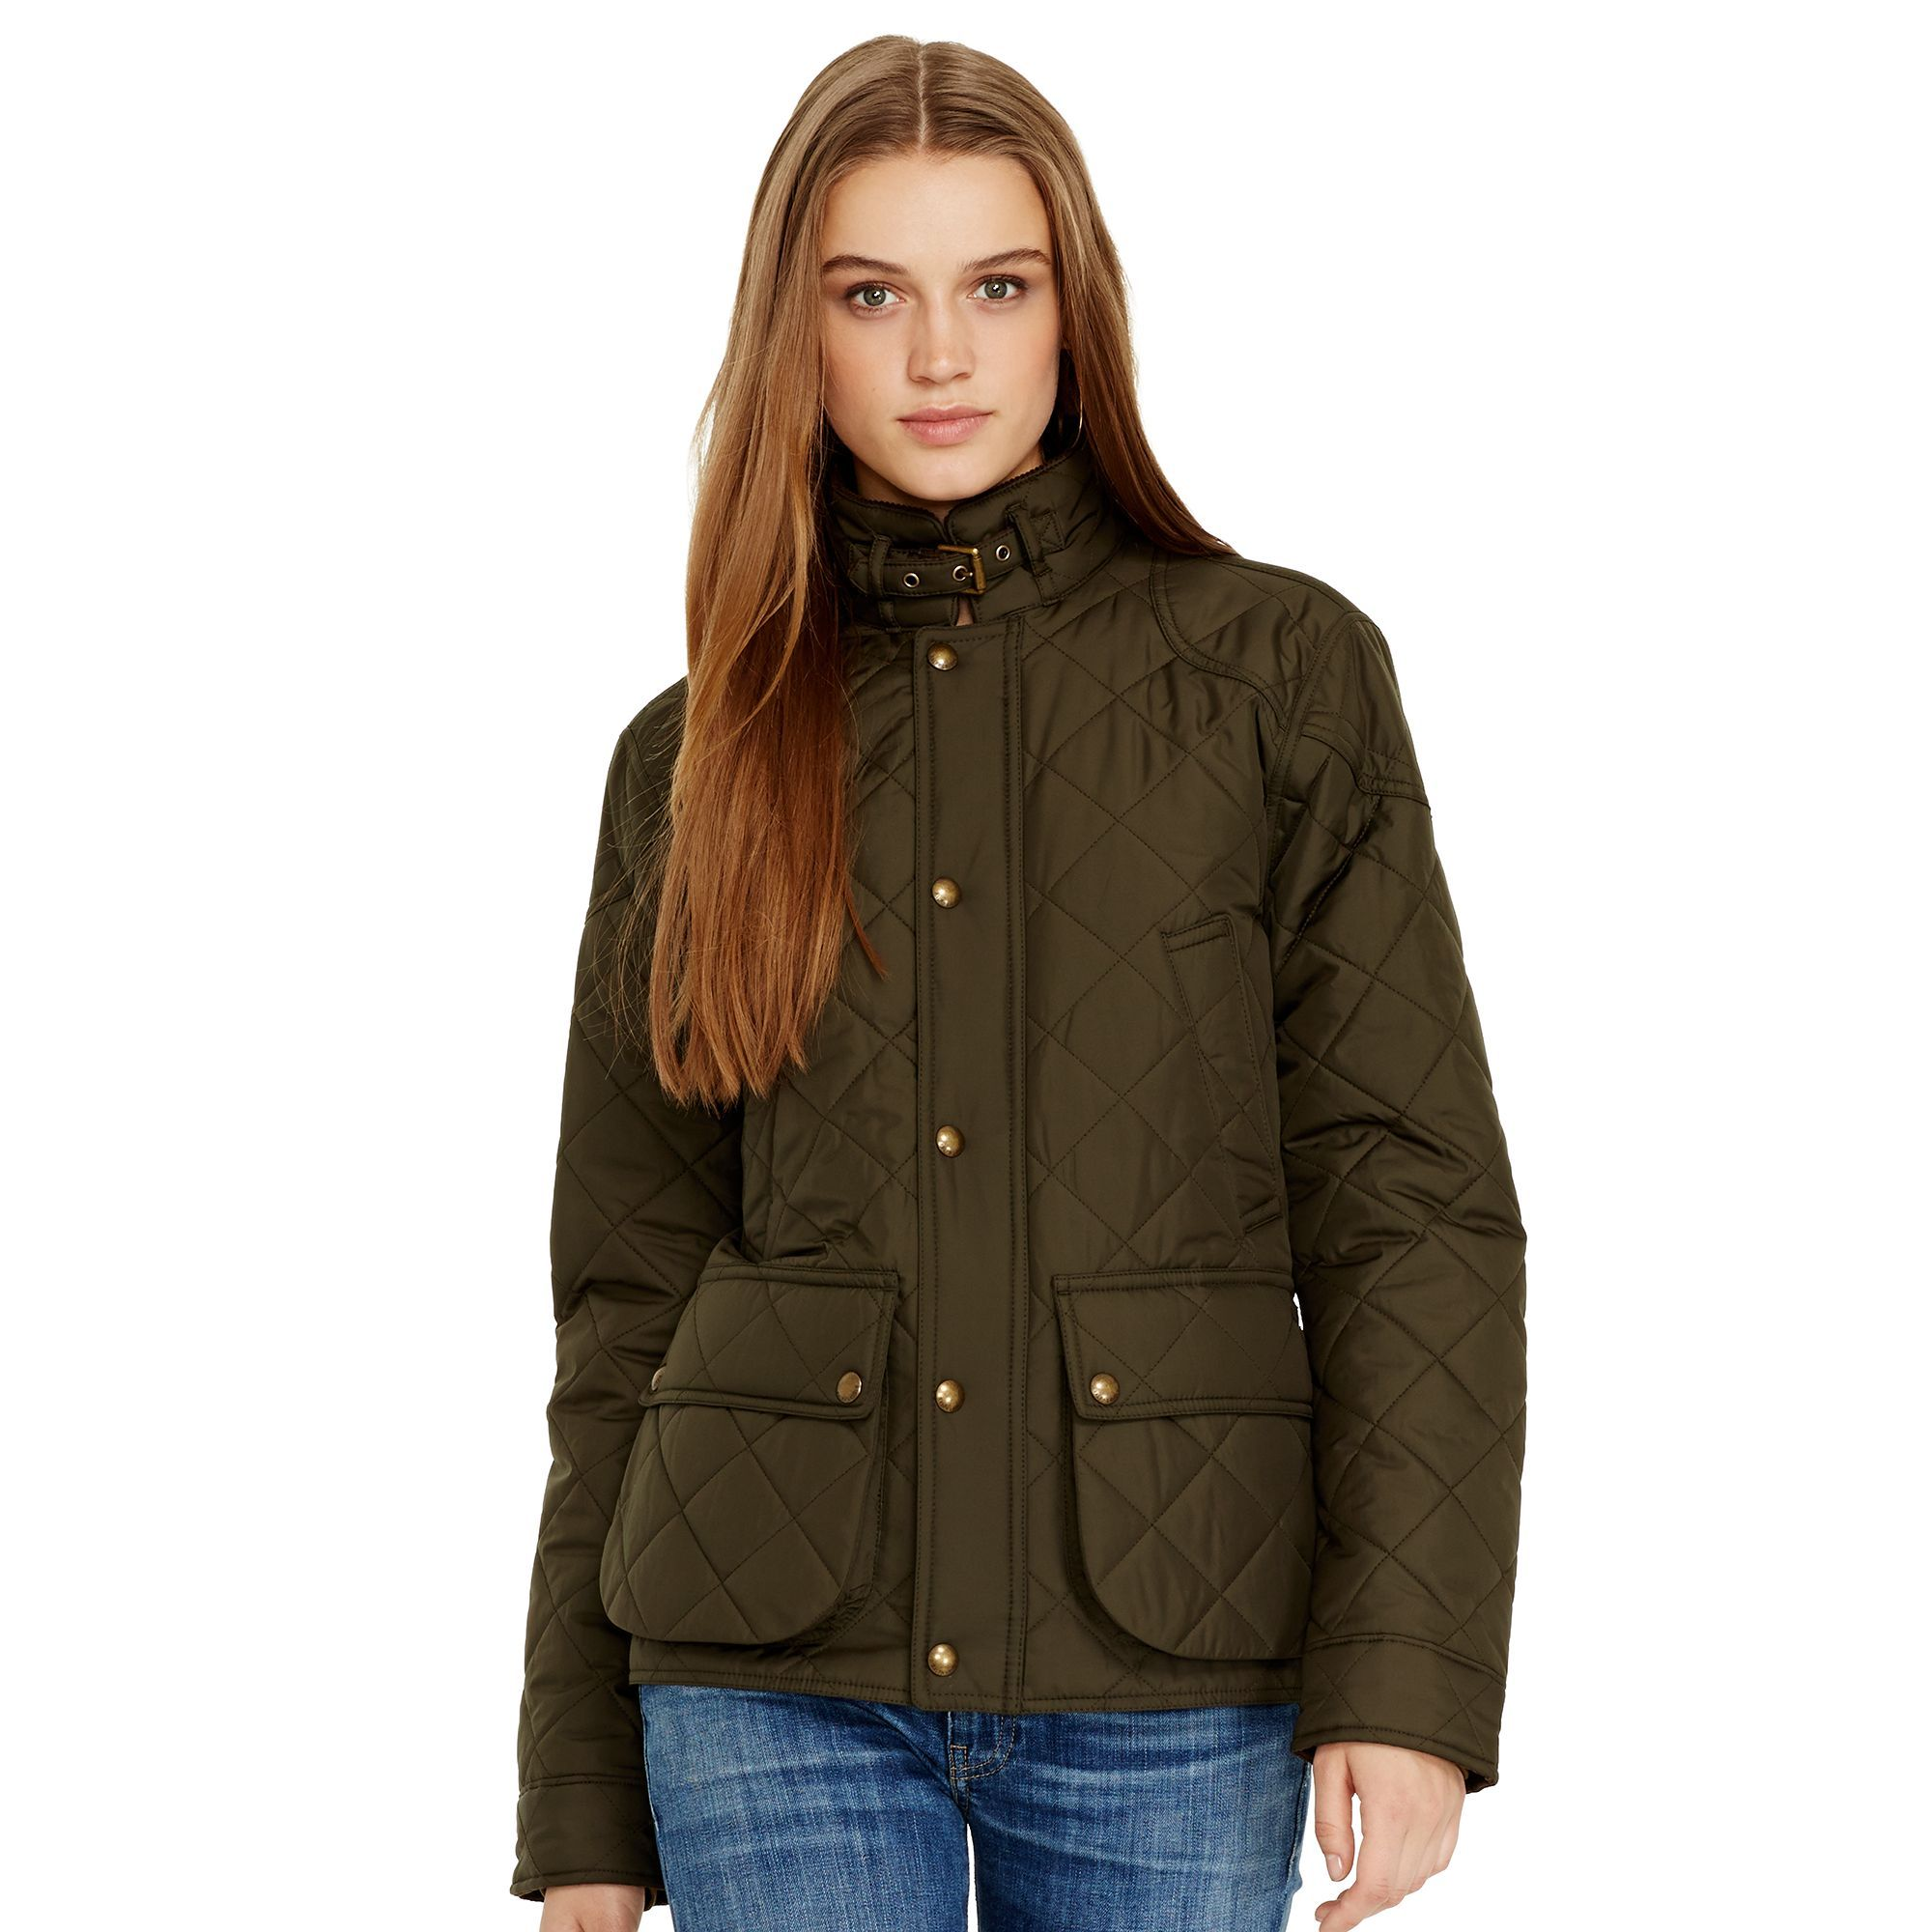 quilted genuine l leather products mens and in superb branded ralph coats quilt rl ireland jackets quality biker vintage size uk polo img black jacket lauren shirts